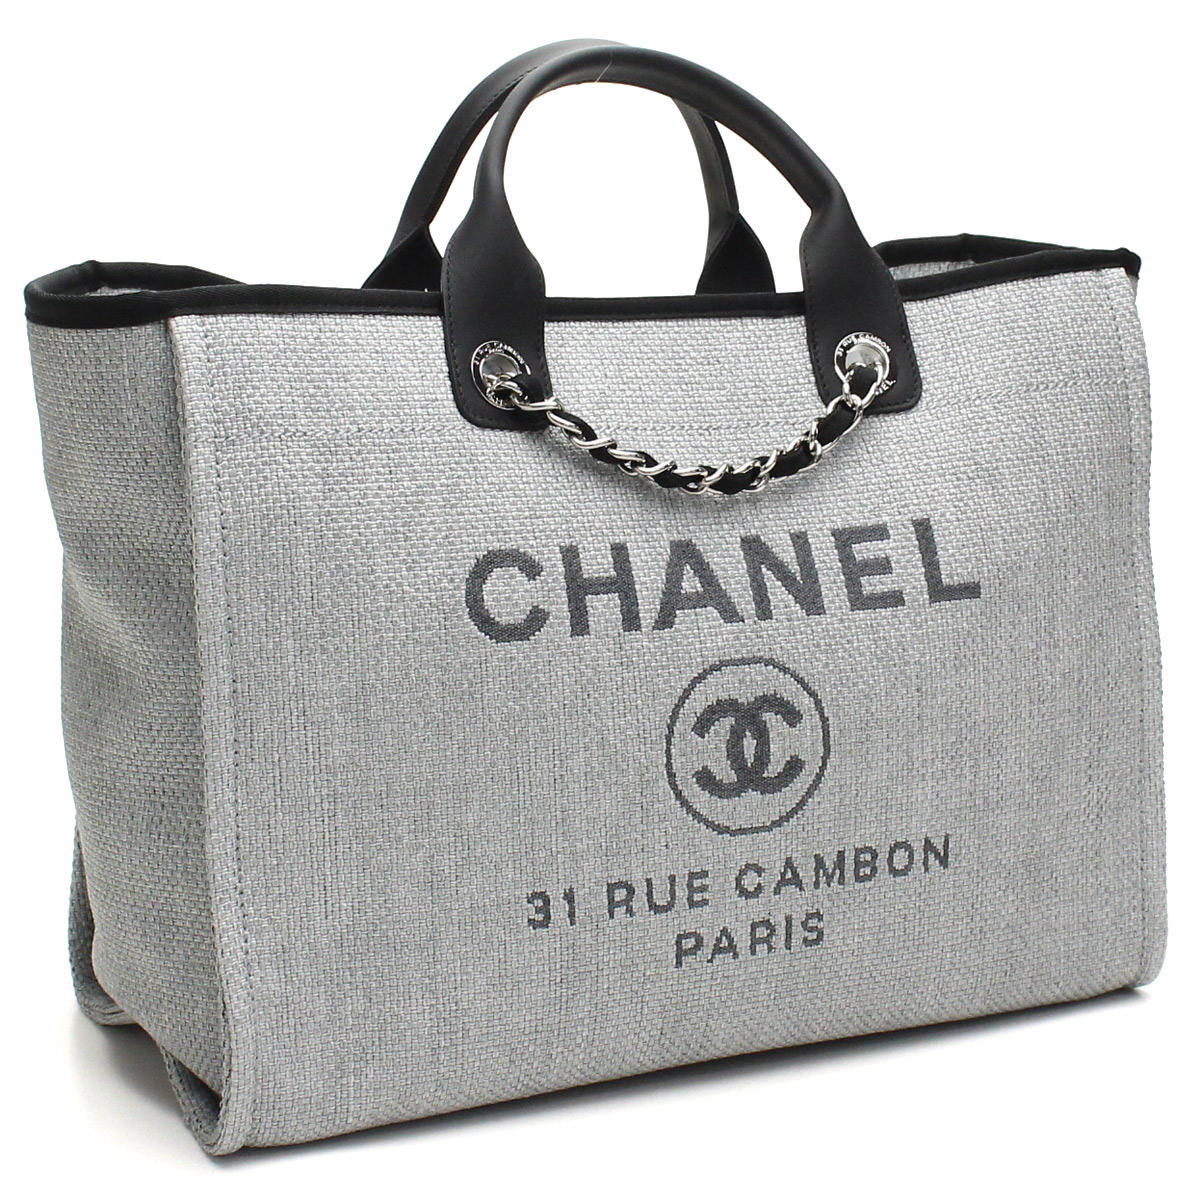 923033ac9395 Bighit The total brand wholesale  Chanel tote bag A66941 grey( taxfree send  by EMS authentic A brand new item )